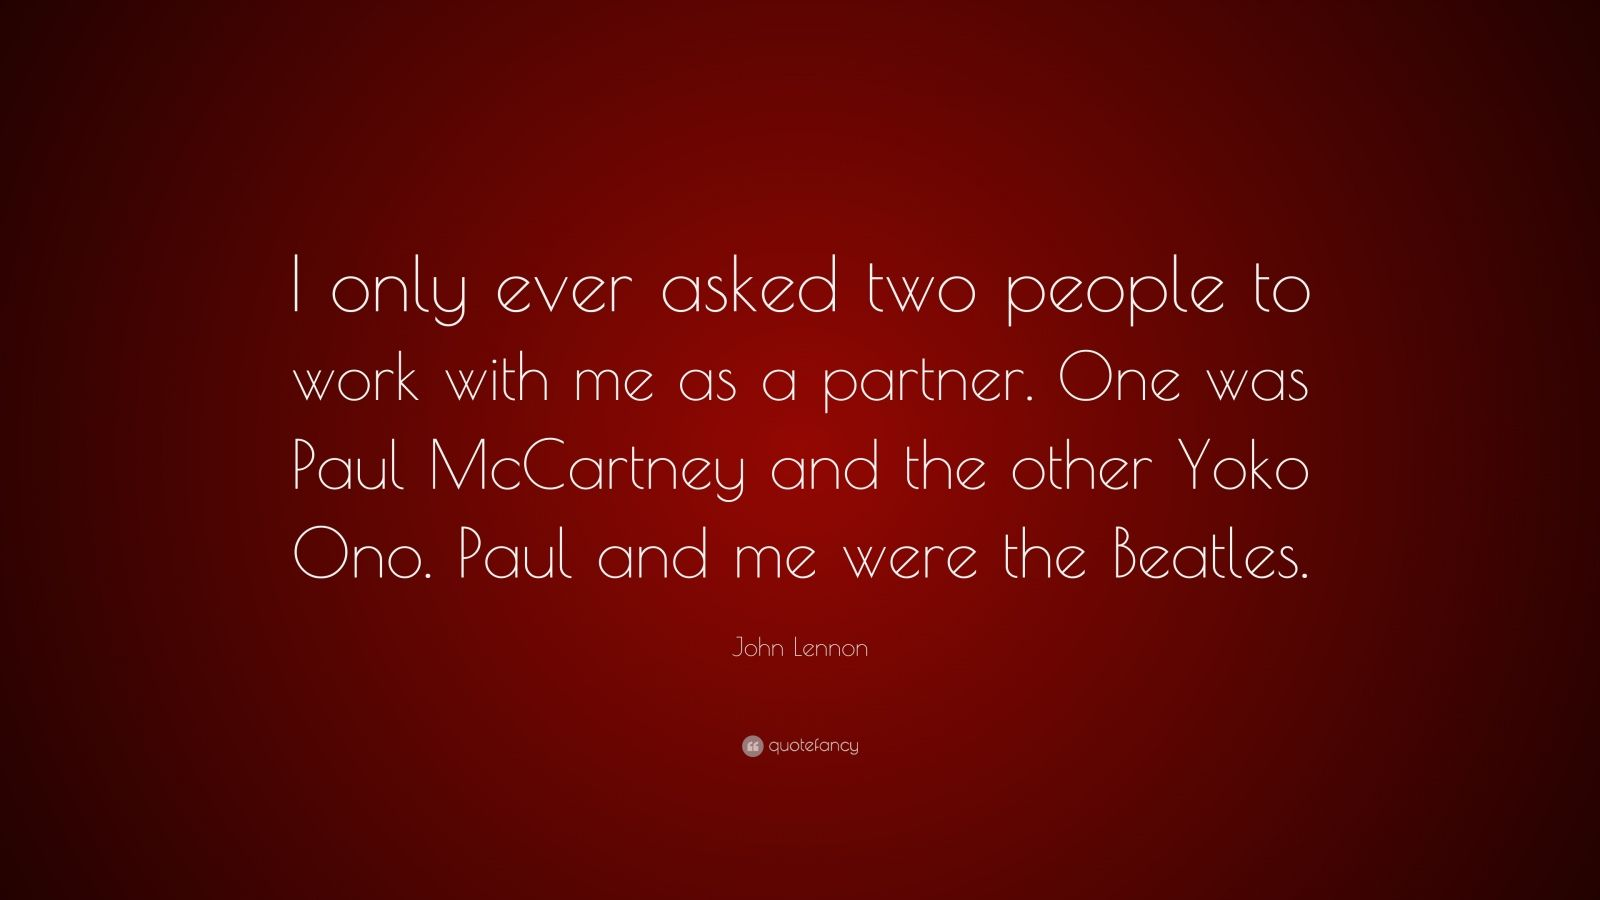 "John Lennon Quote: ""I only ever asked two people to work with me as a partner. One was Paul McCartney and the other Yoko Ono. Paul and me were the Beatles."""